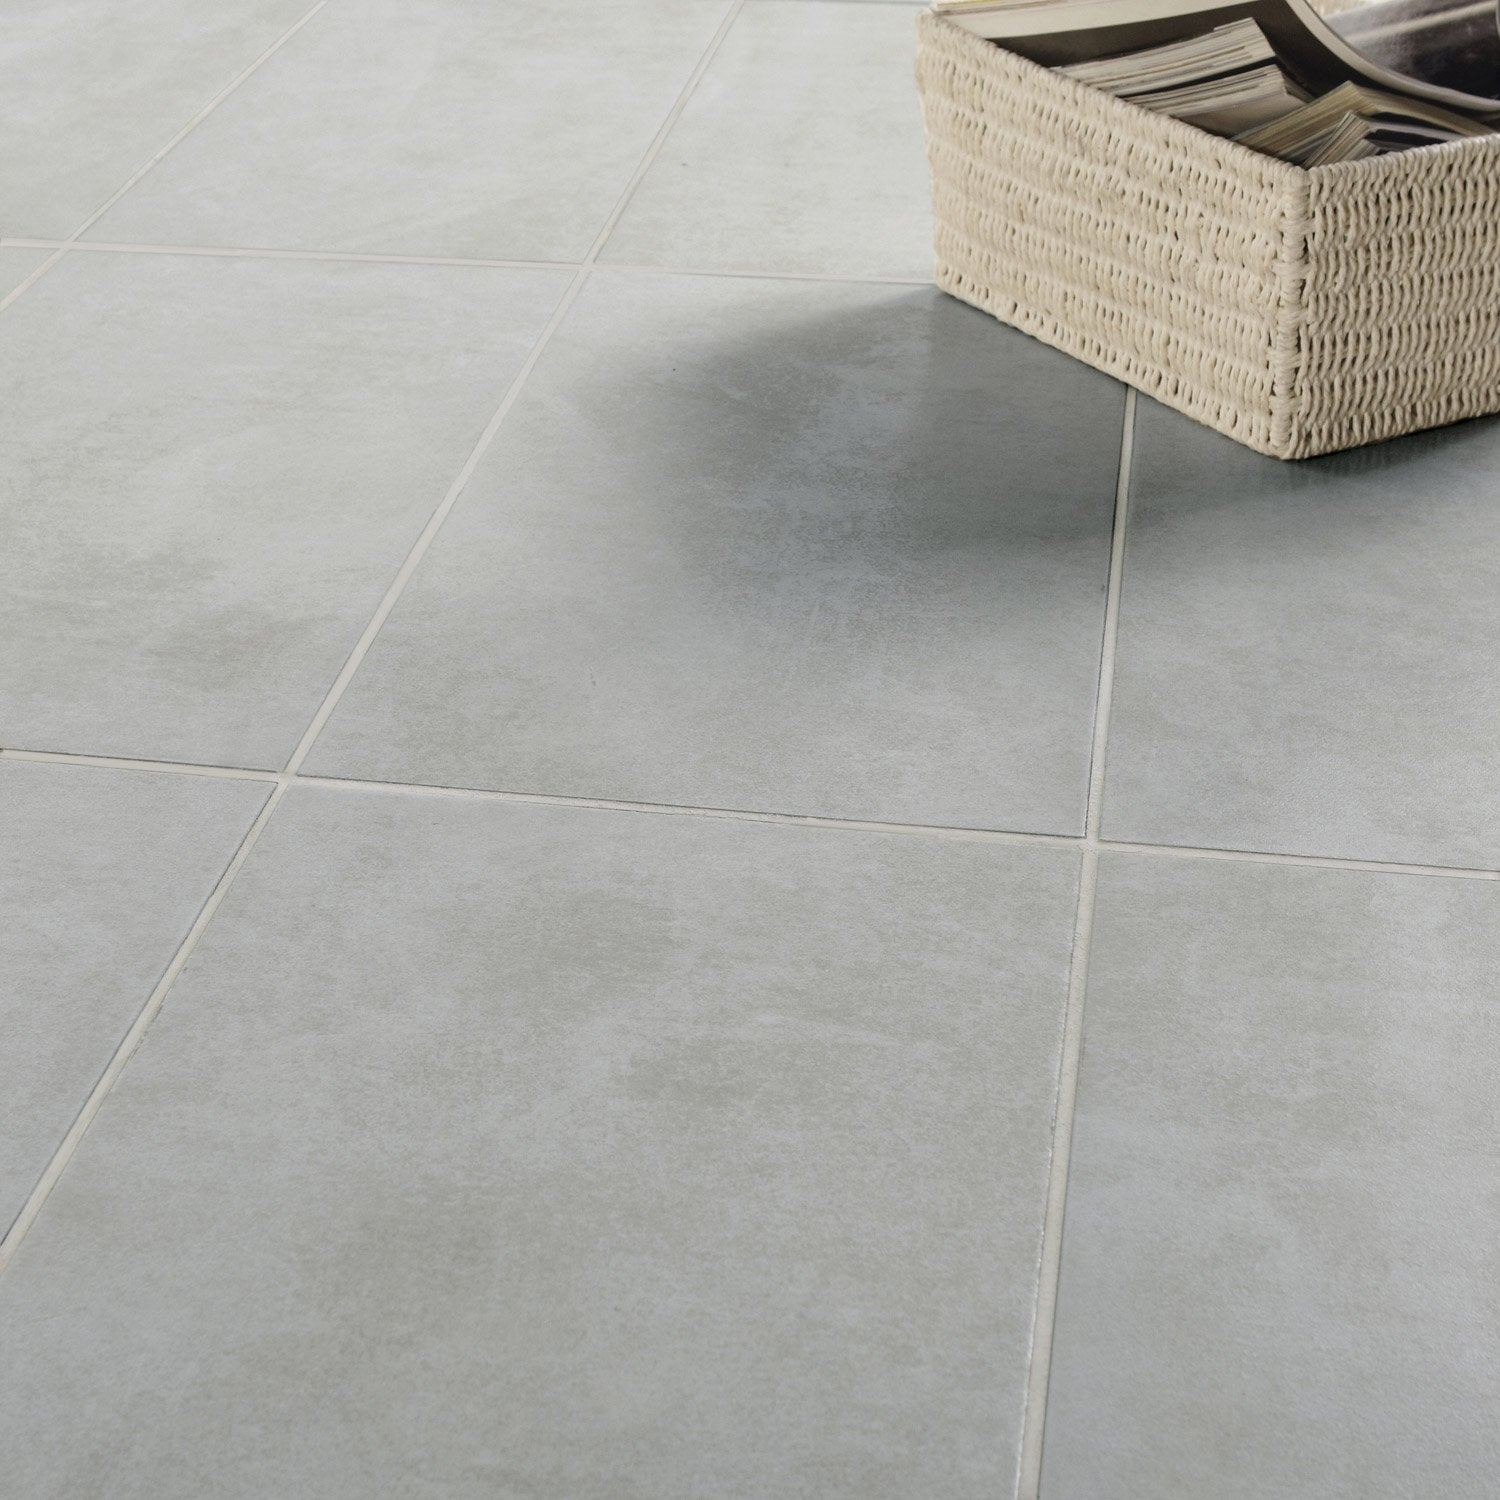 Carrelage gris clair 30 x 30 for Carrelage gris clair